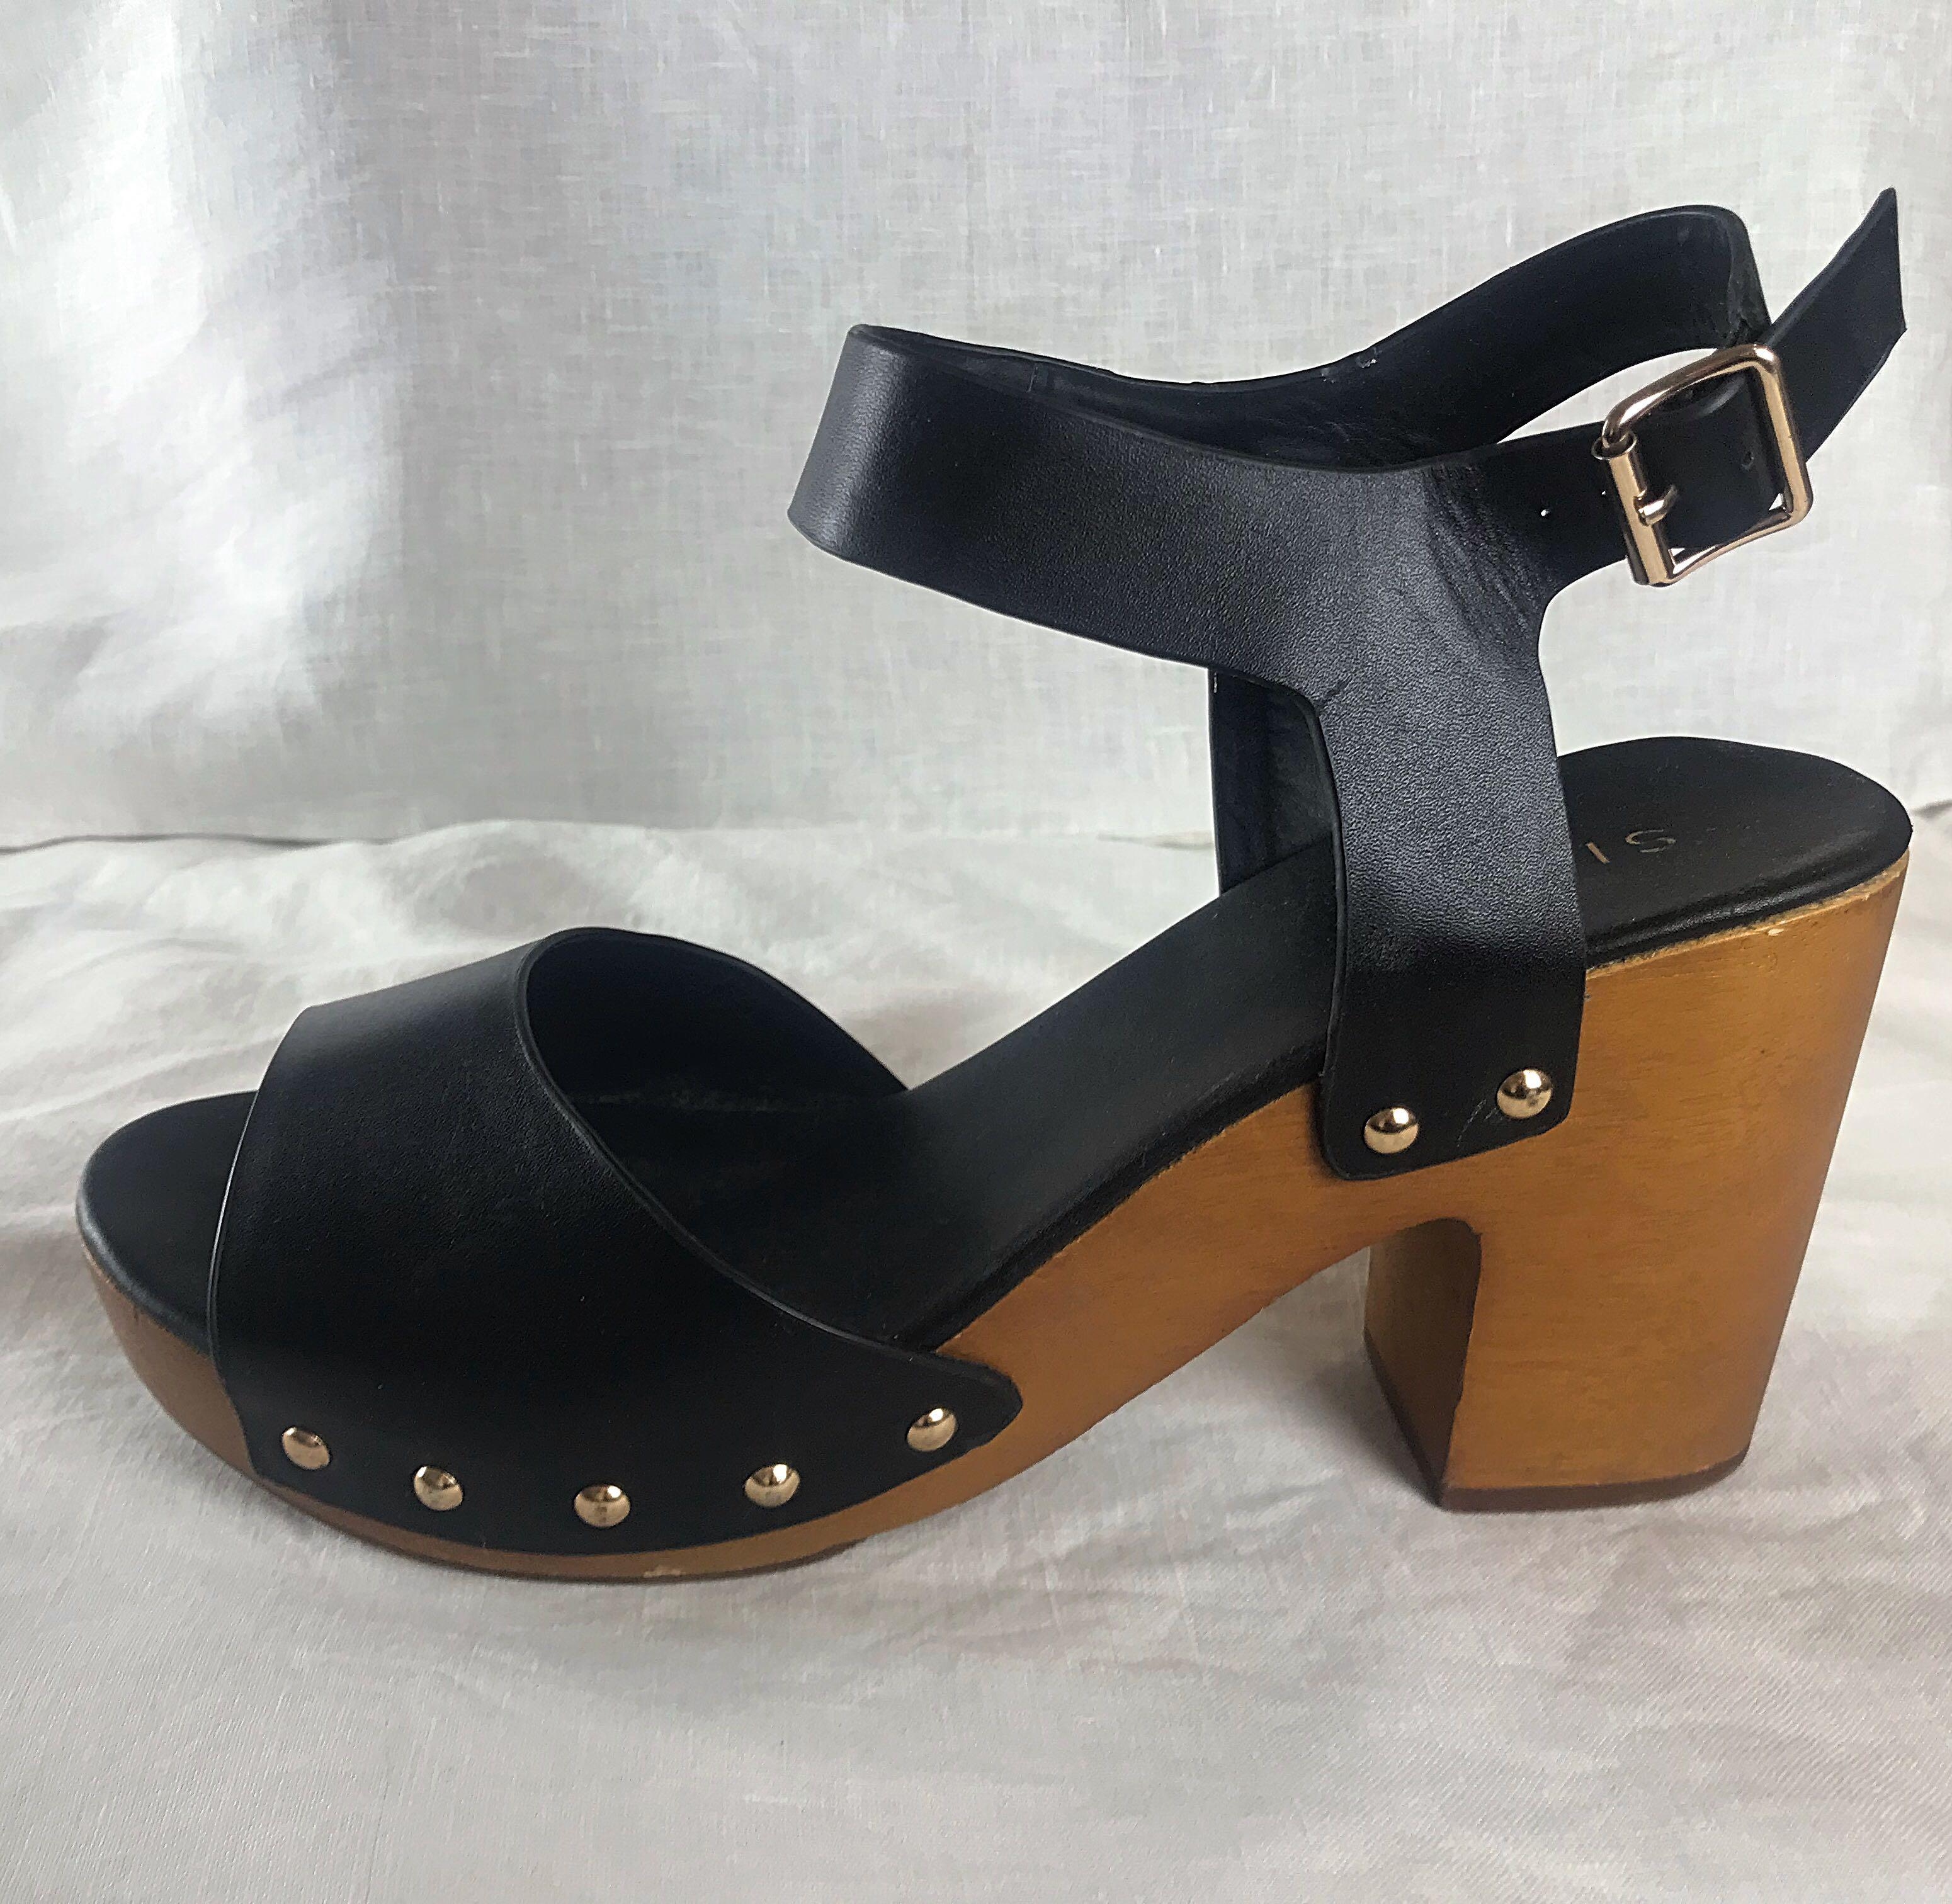 Siren Black Leather Handcrafted Wooden Block Heal Shoes